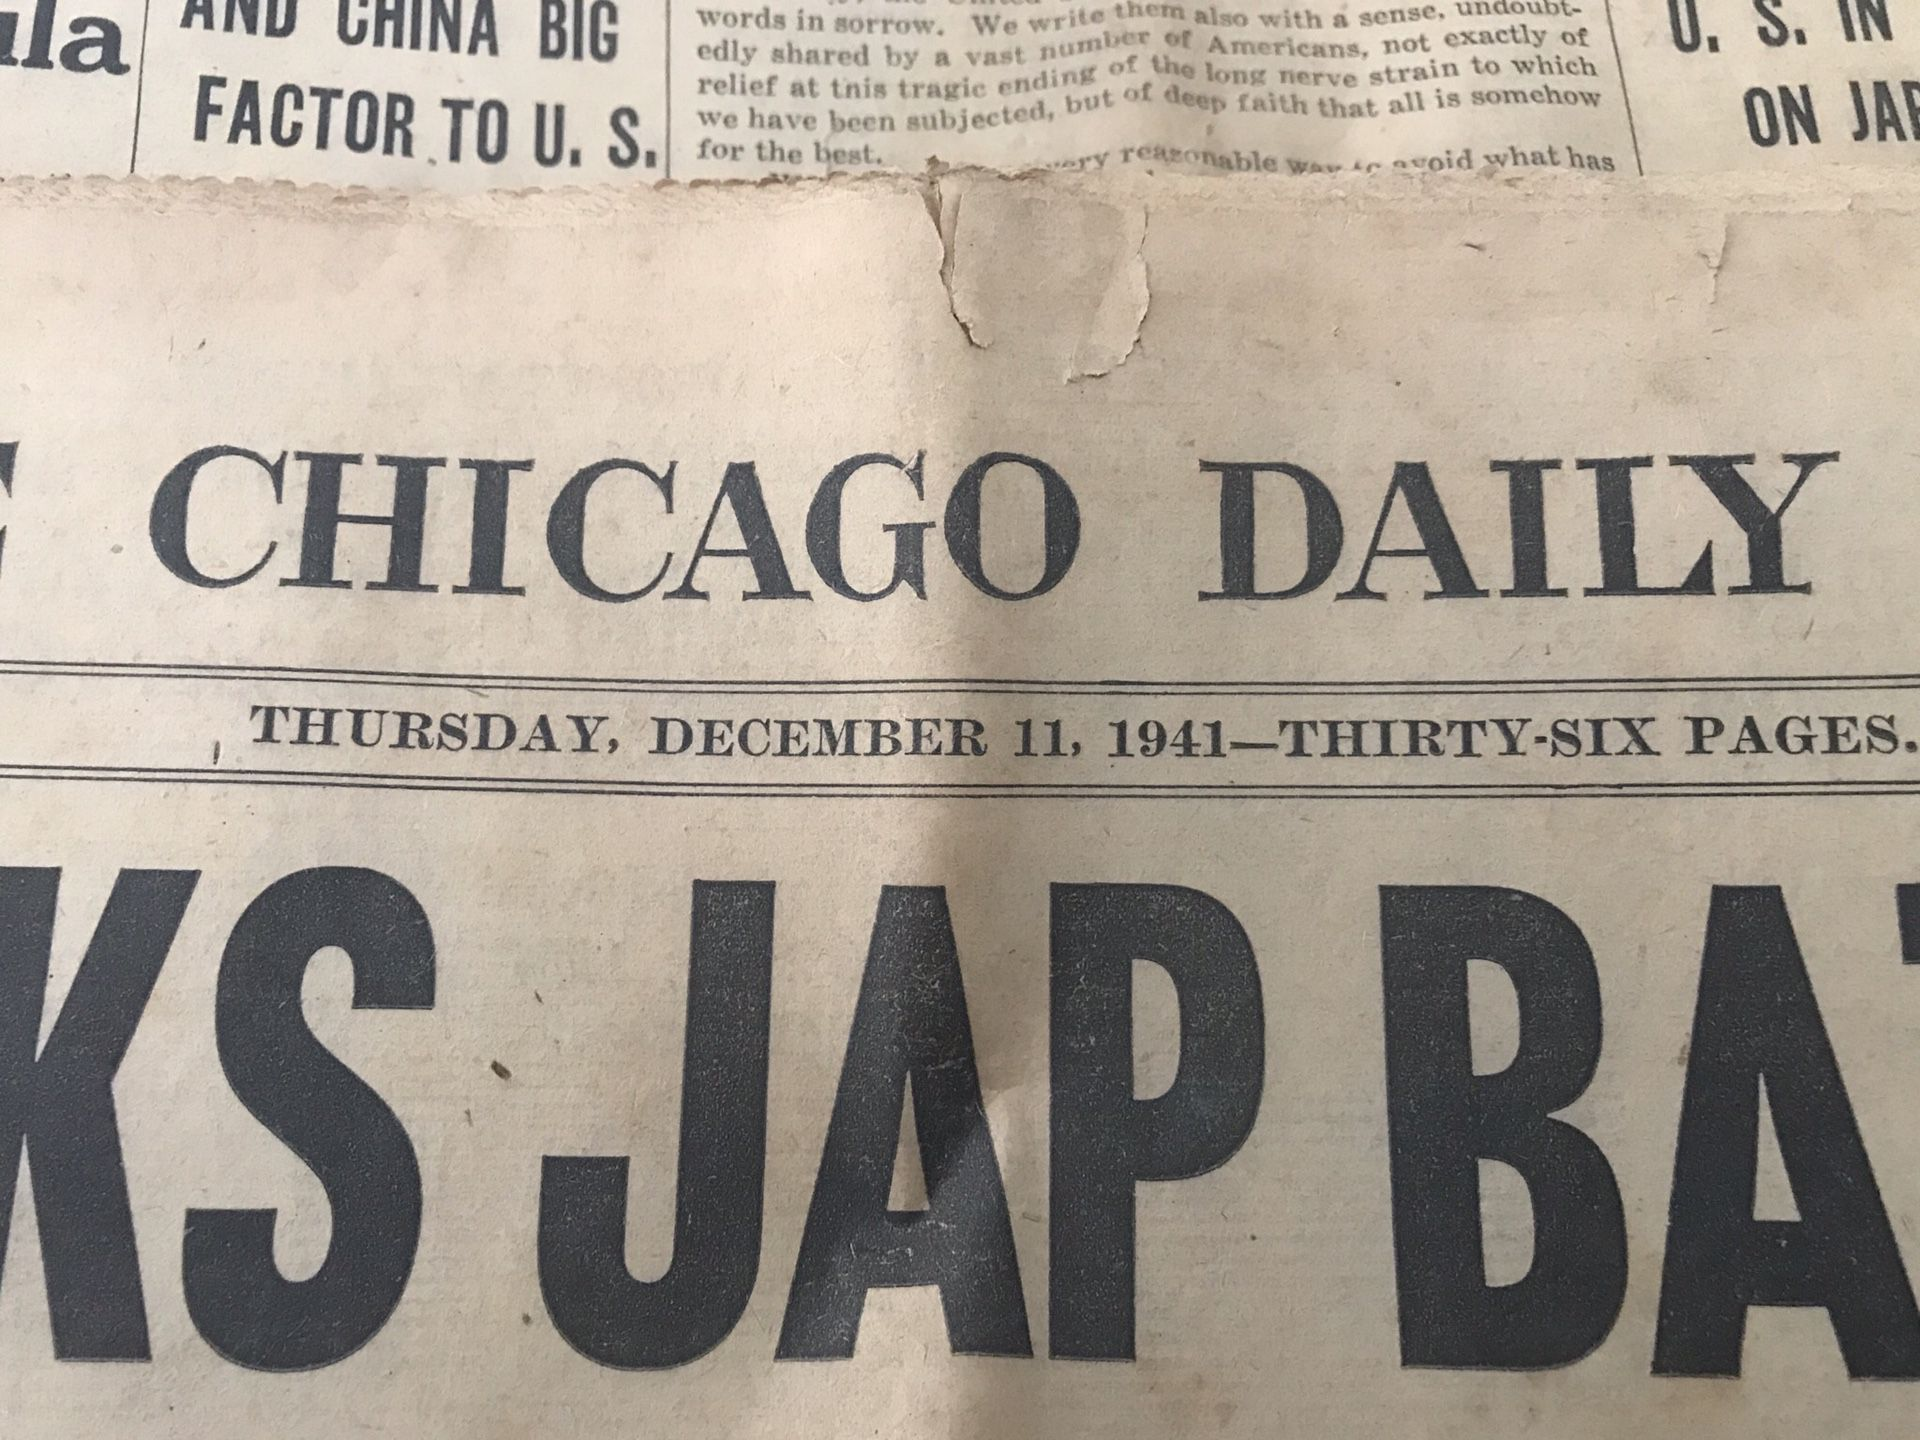 3 Chicago daily news papers